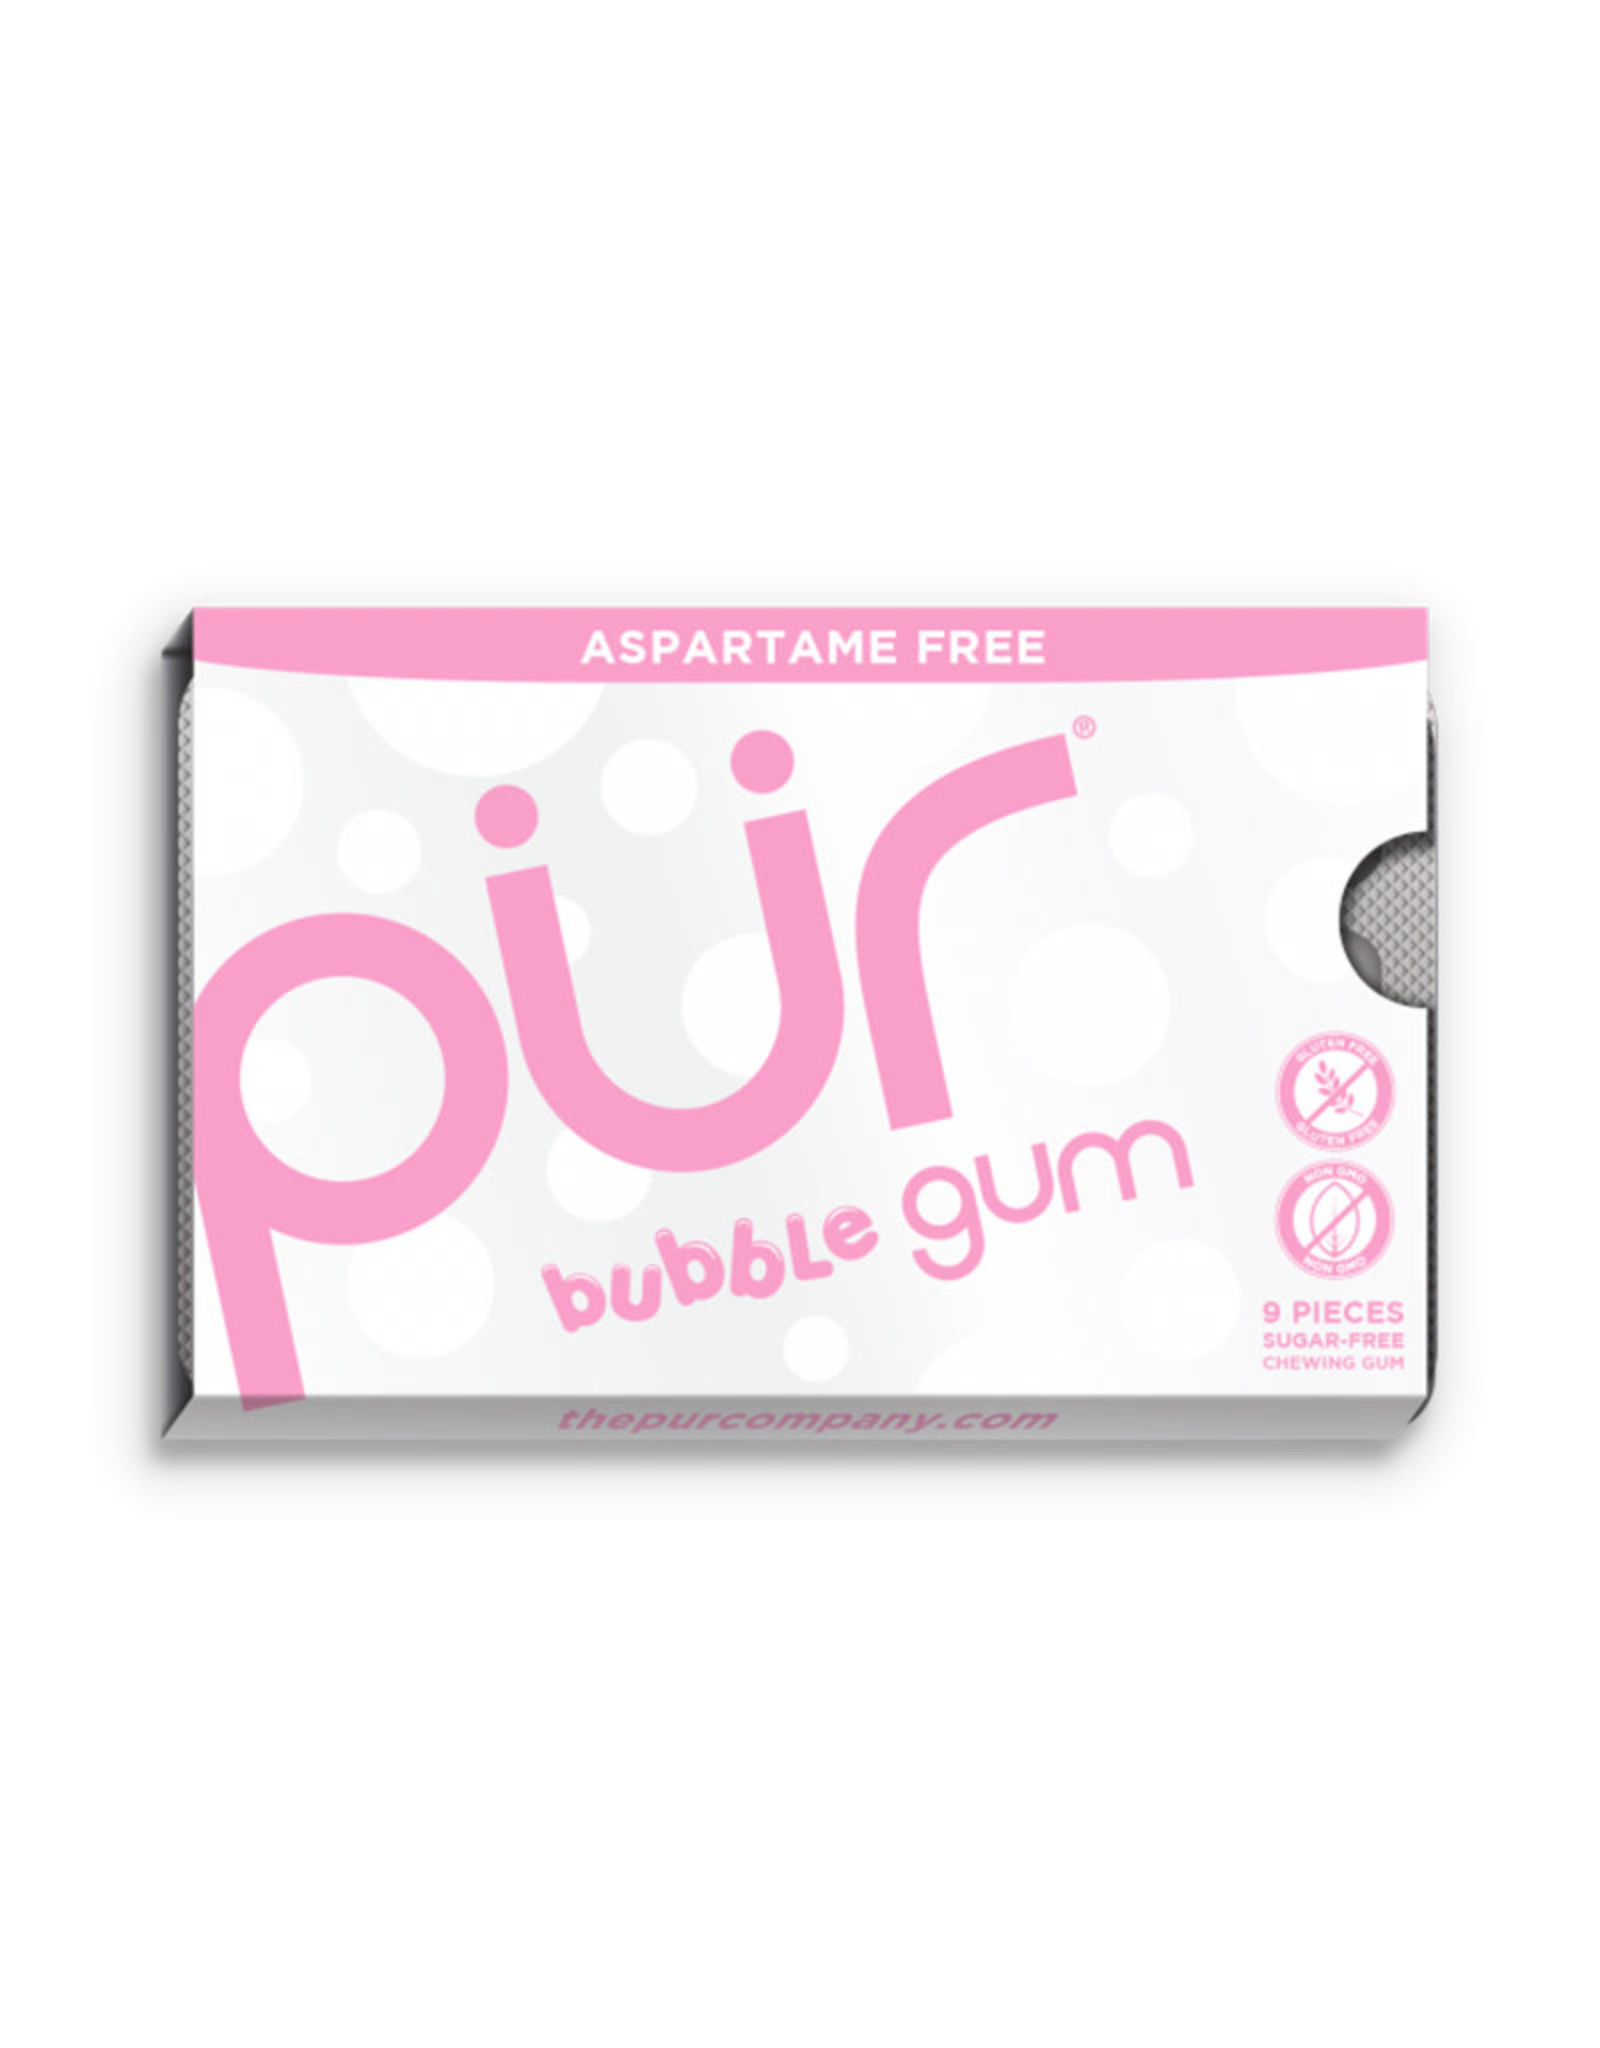 PUR PUR - Gum, Bubblegum (9pc)